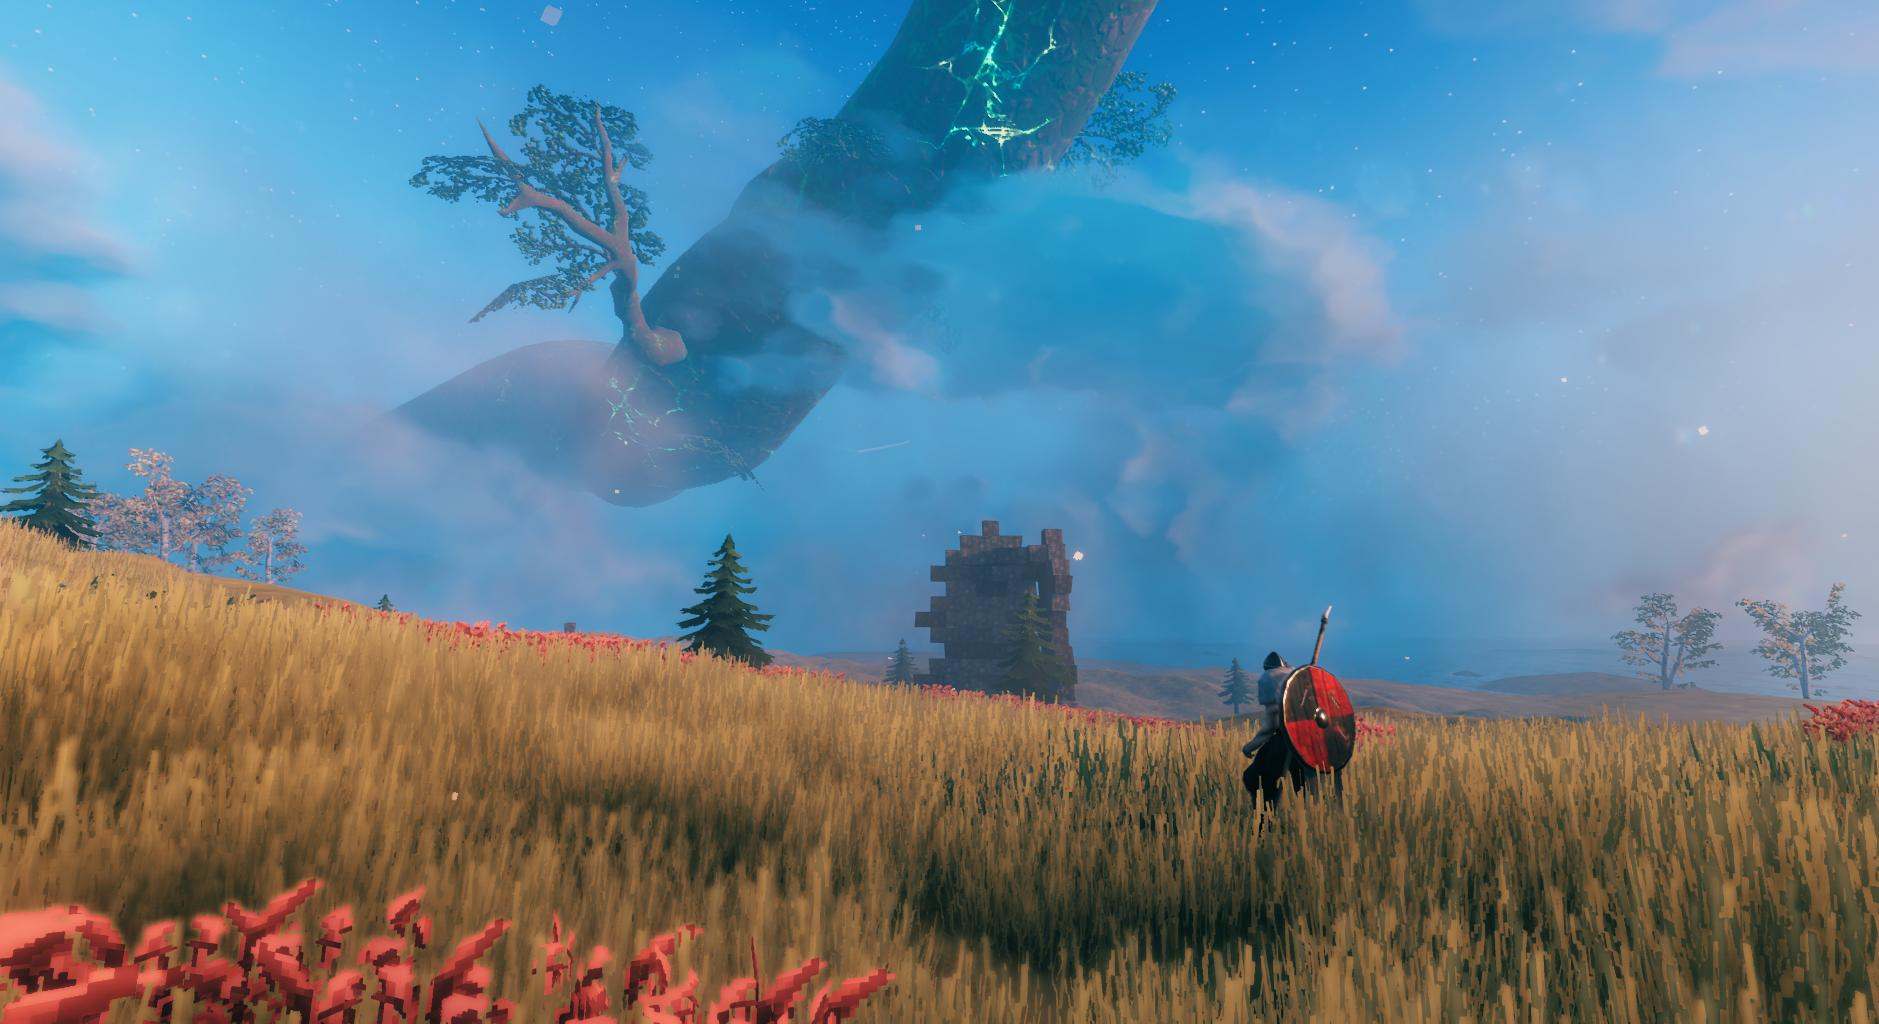 Survival game 'Valheim' sold four million copies in three weeks of early access - Engadget